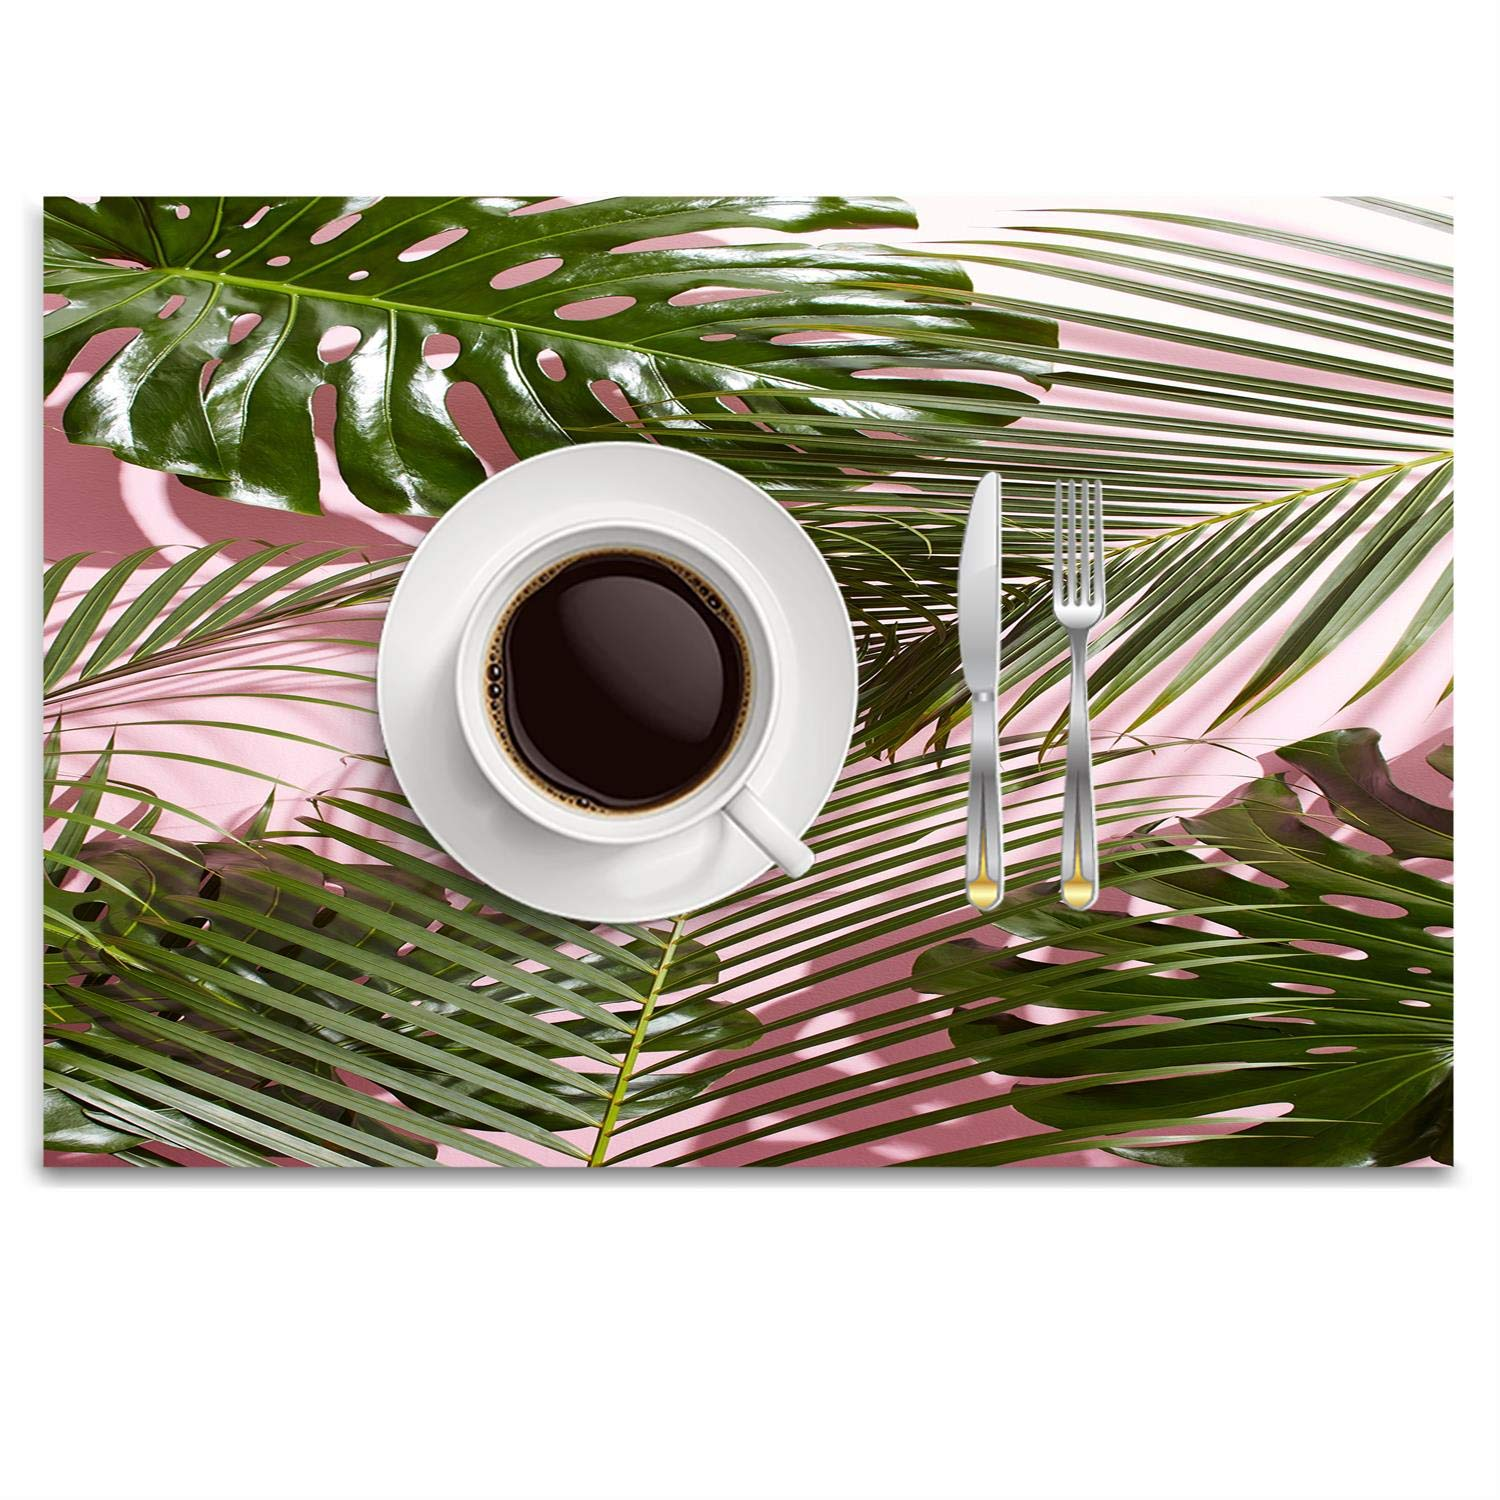 POGResdx West Elm Tropical Leaves Summer Placemat Heat-Resistant Washable Table Place Mats for Kitchen Dining Table Decoration 14.8 x 9.9 inch